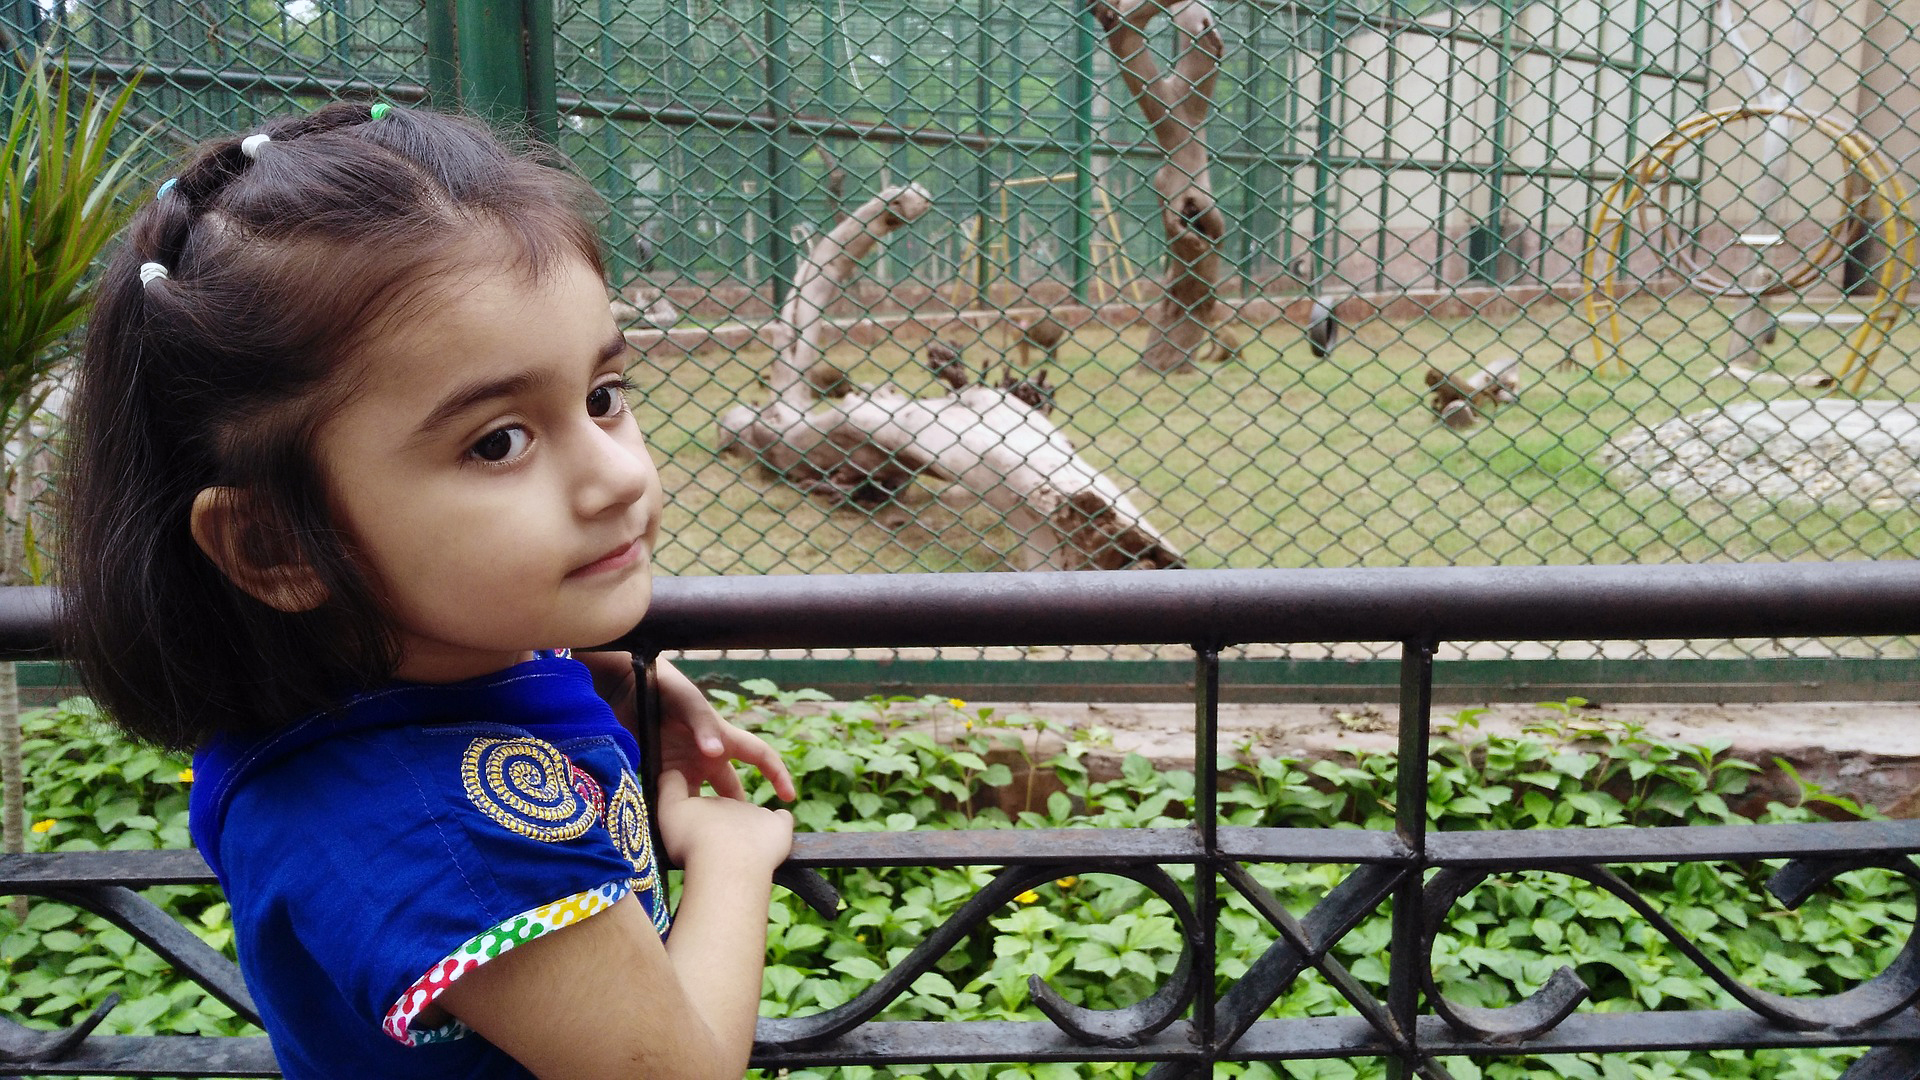 Blue Bird Day and kid at zoo